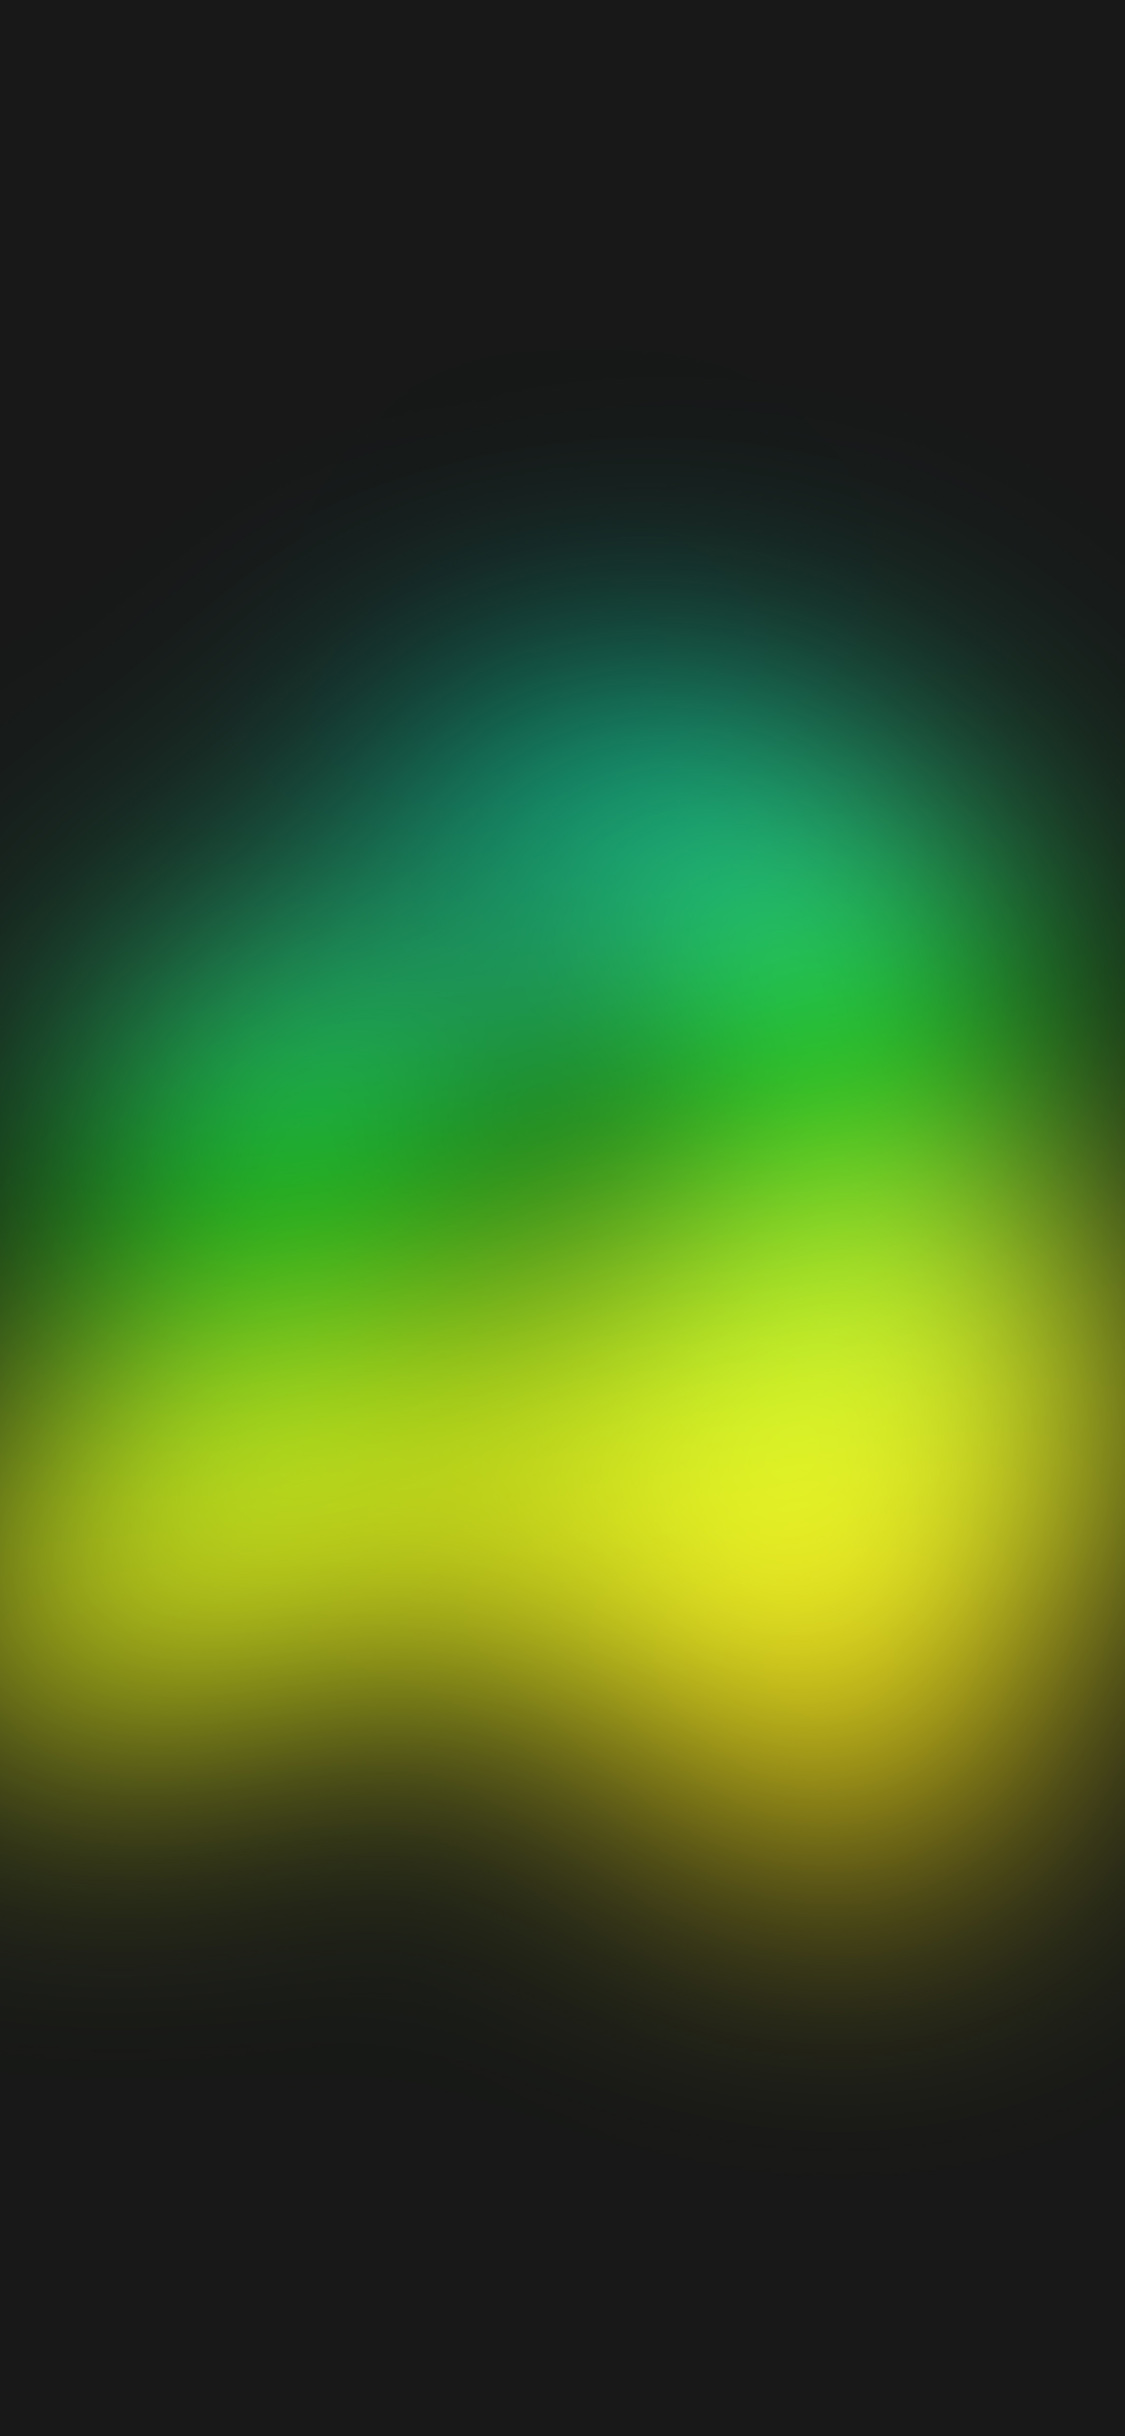 iPhoneXpapers.com-Apple-iPhone-wallpaper-sk75-yellow-green-ufo-blur-gradation